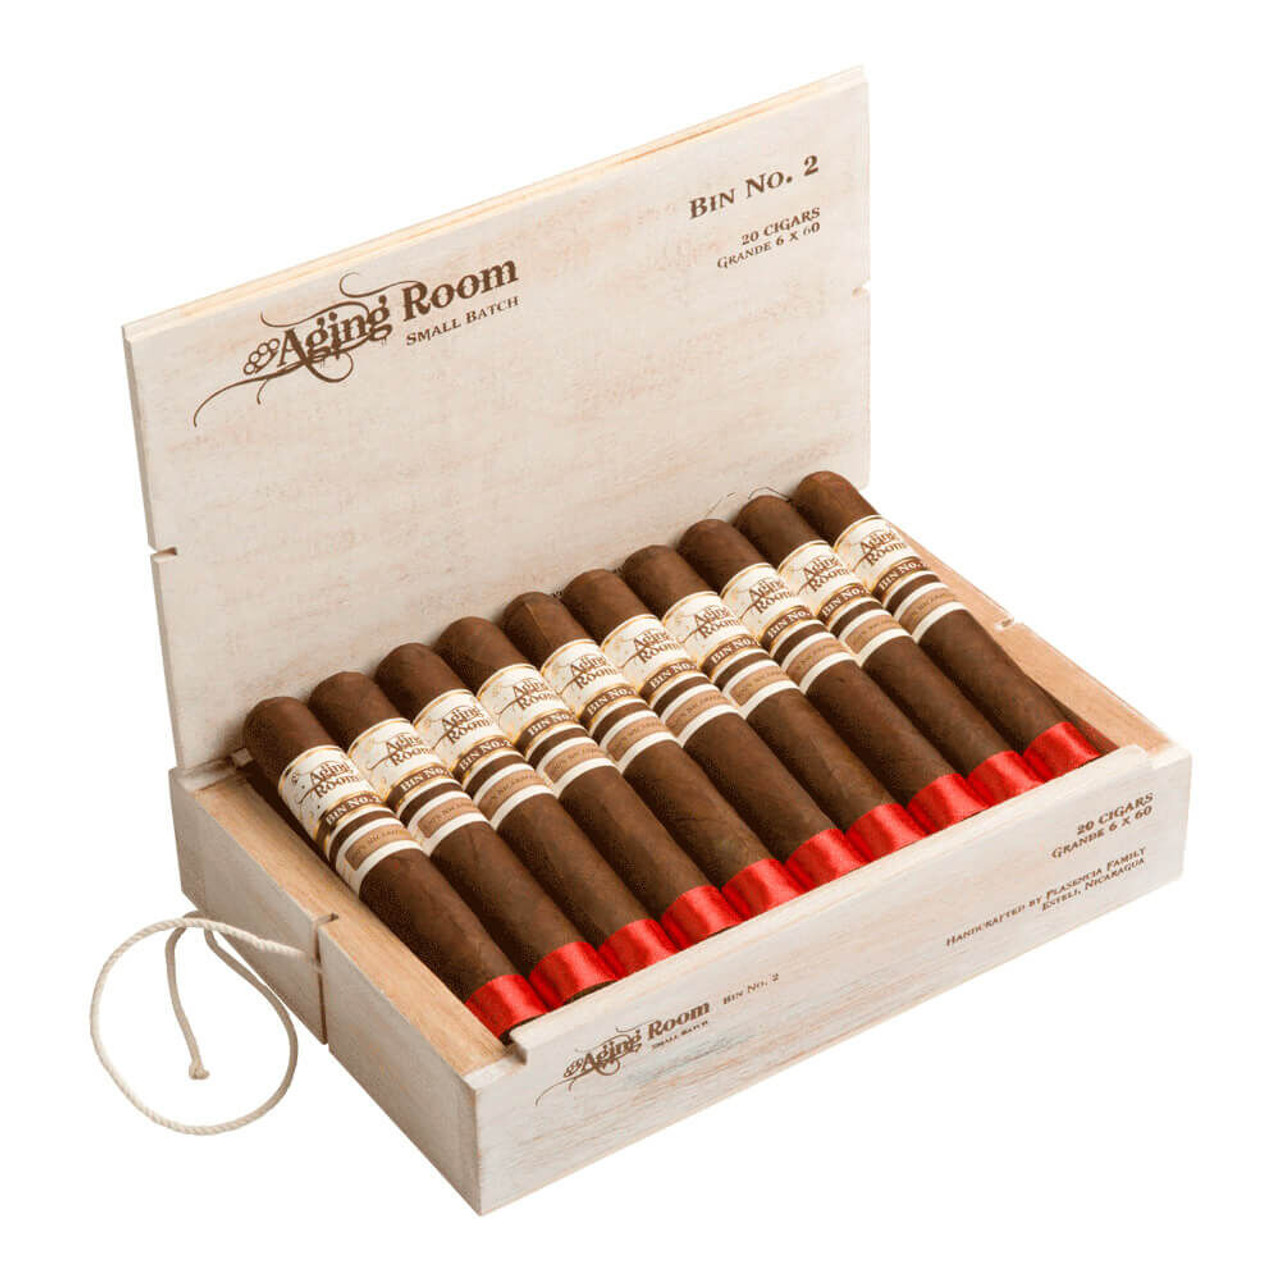 Aging Room Bin No. 2 Grande Cigars - 6.0 x 60 (Box of 20)